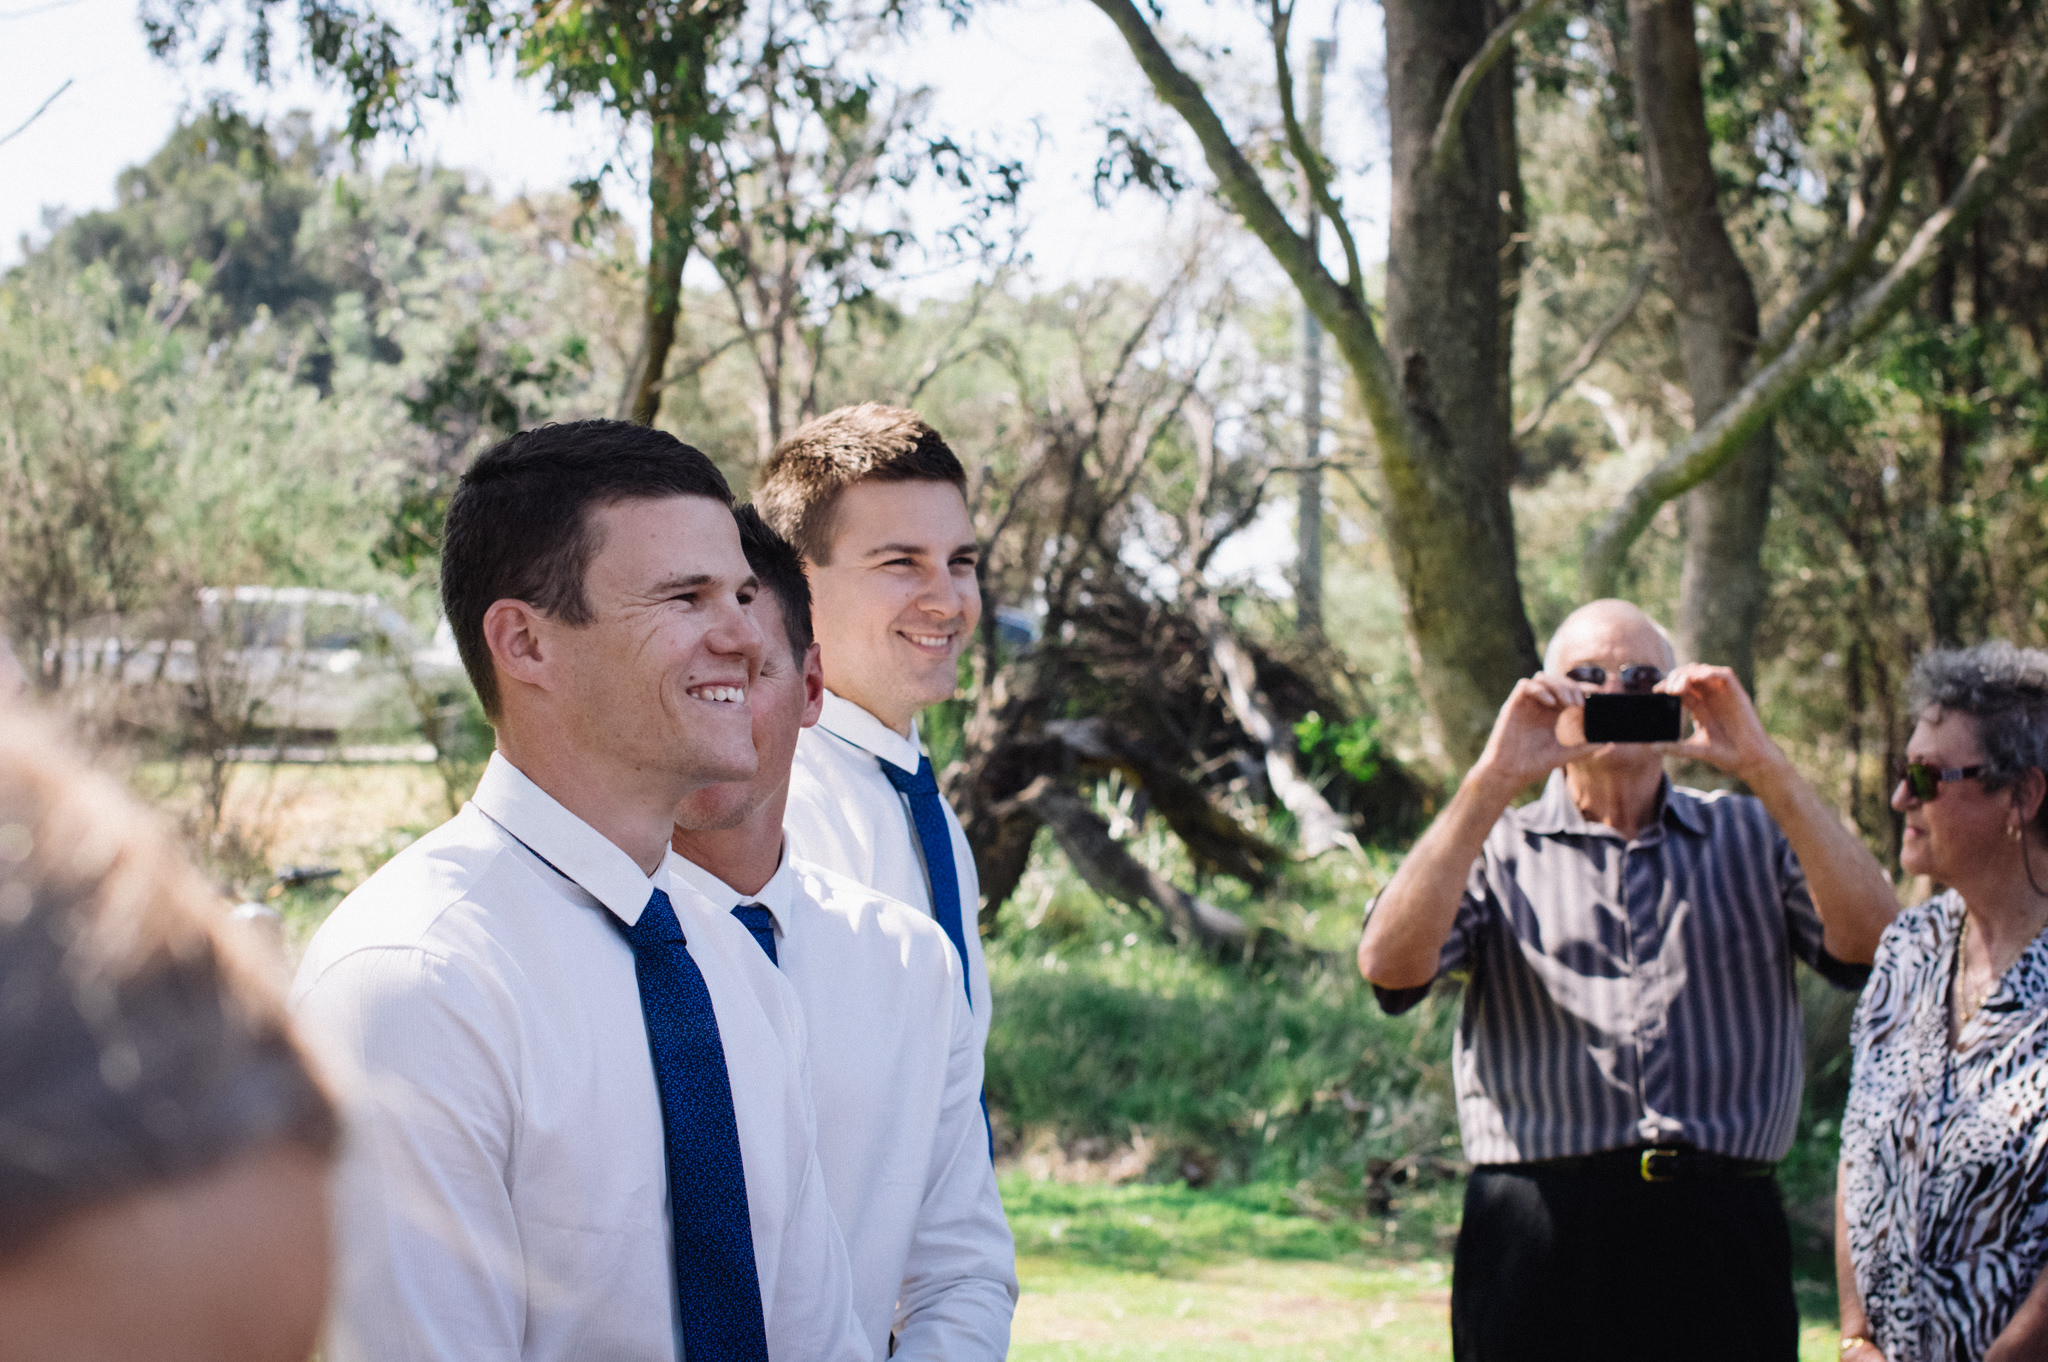 Mandurah Wedding Photographer Ceremony 4